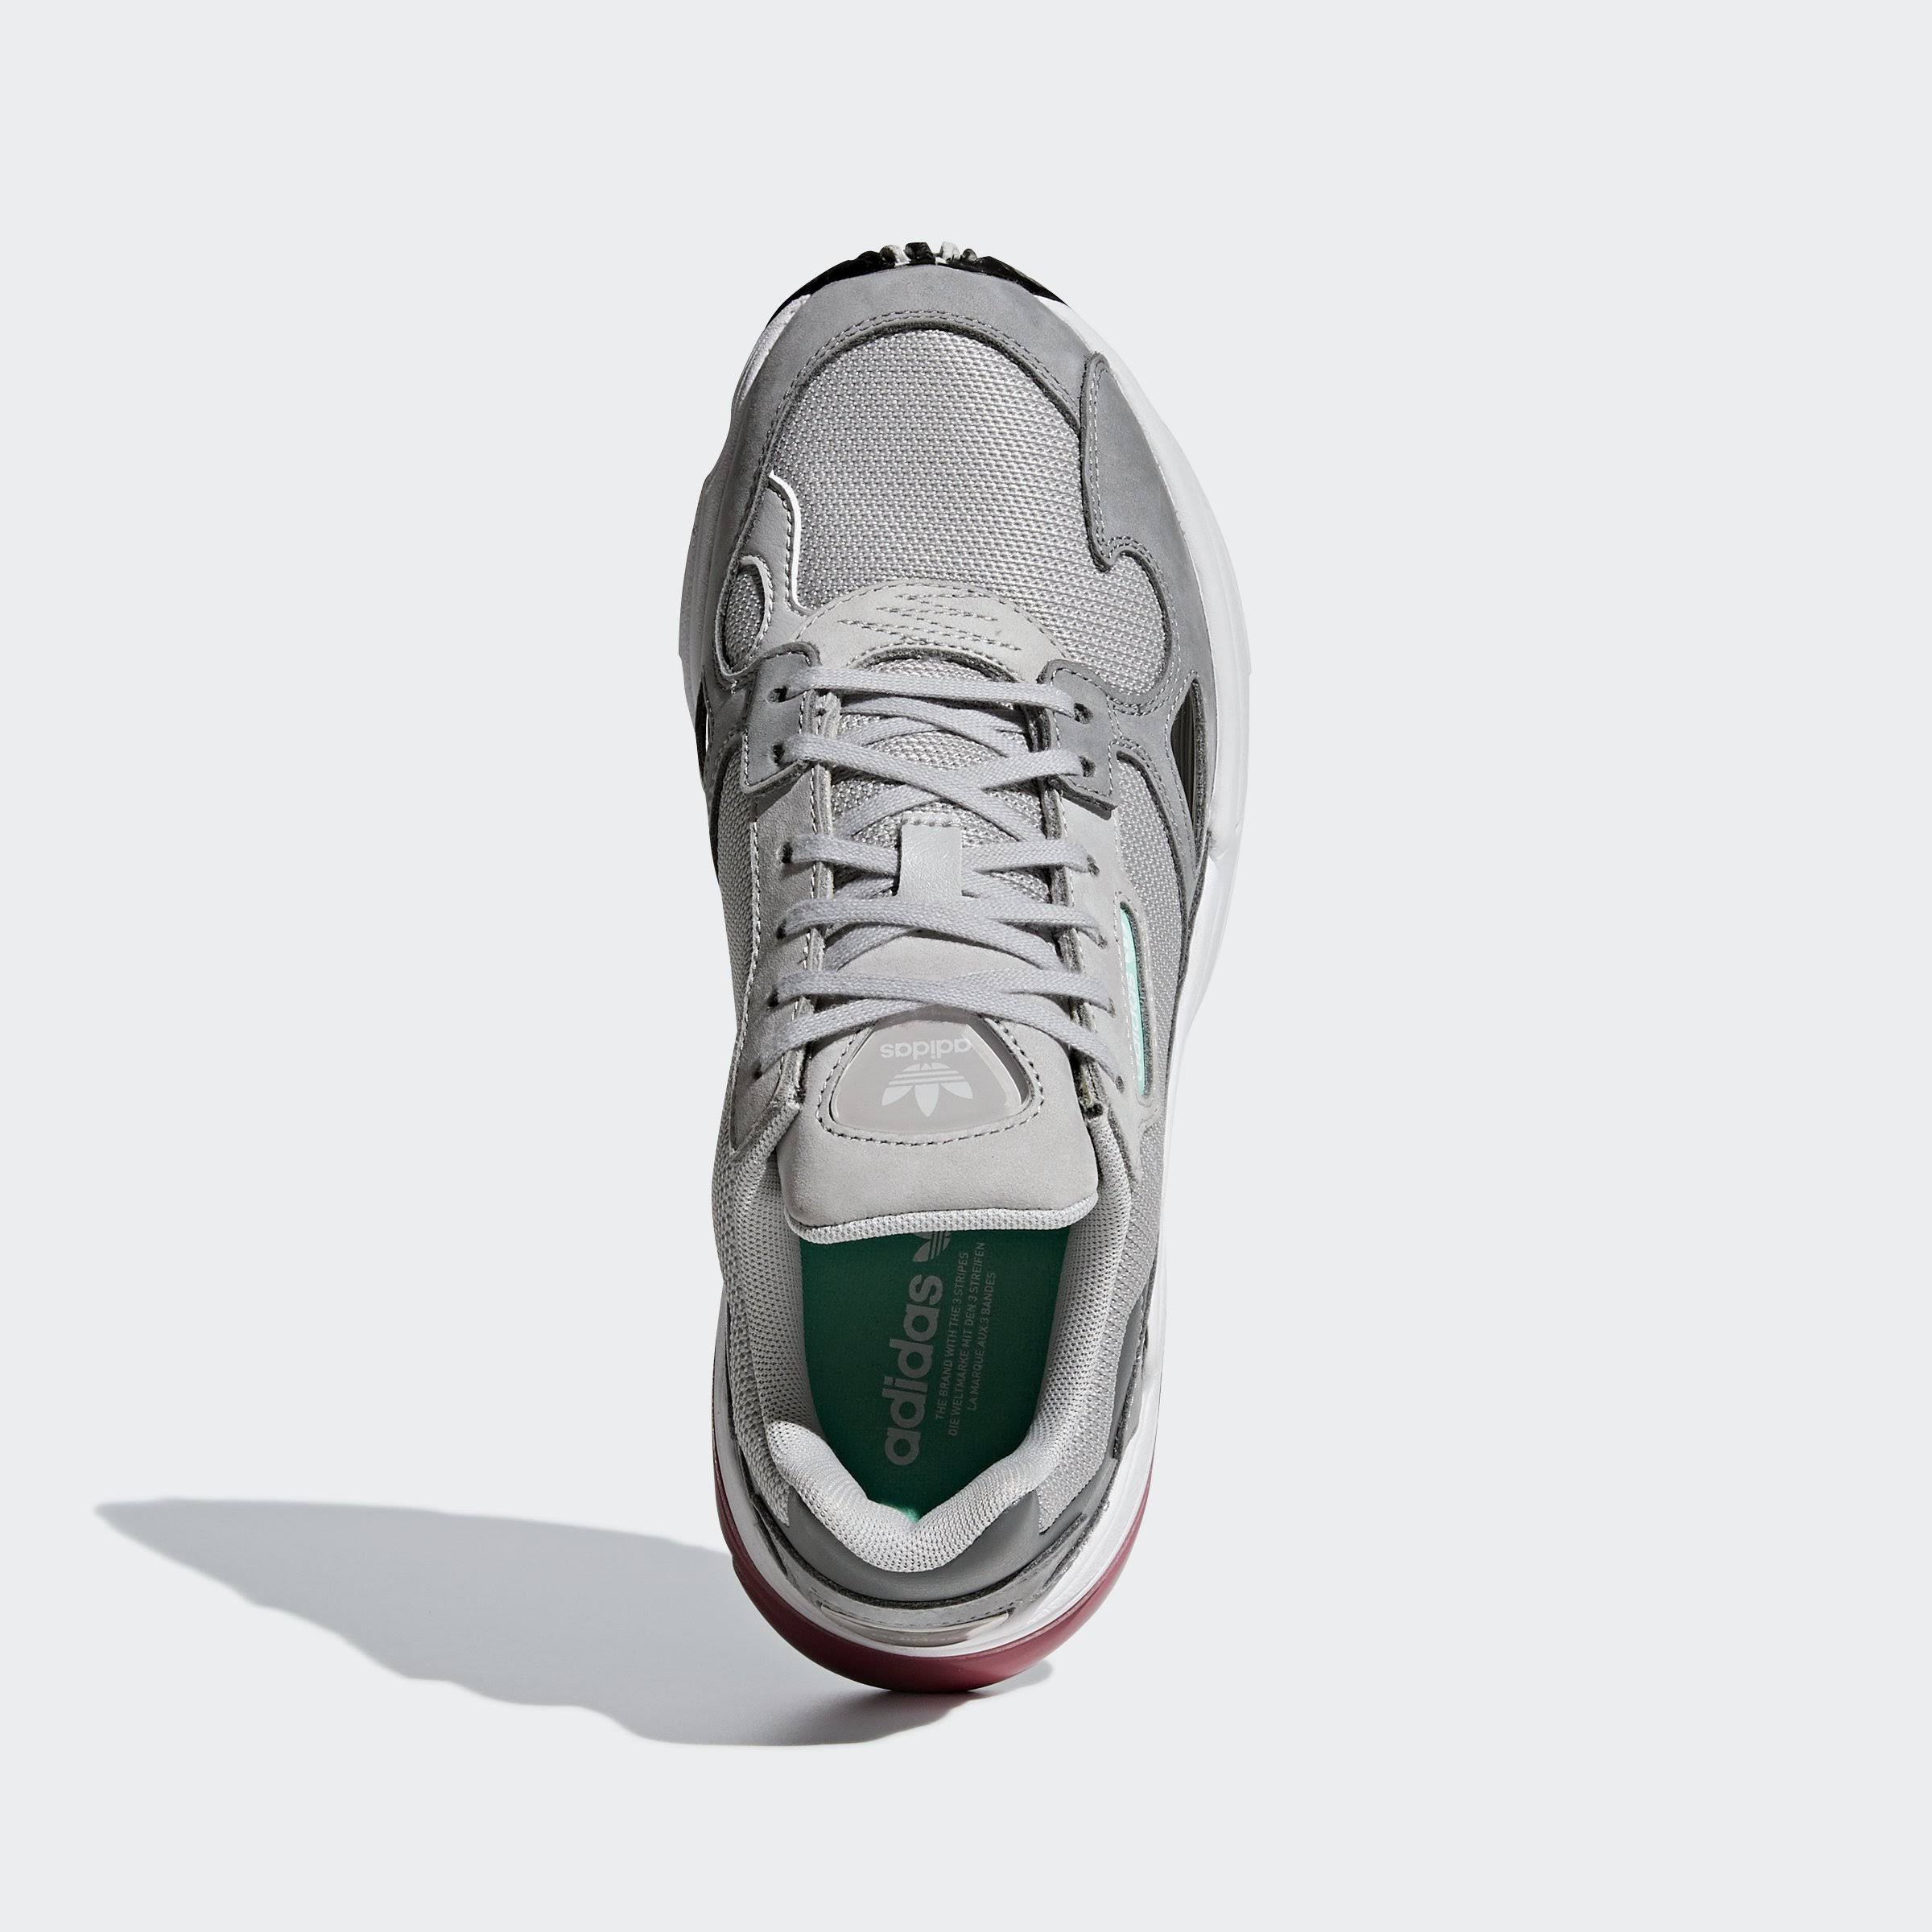 Shoes 6 Red Adidas Maroon Falcon Mujer Gris Trace axpUwzq